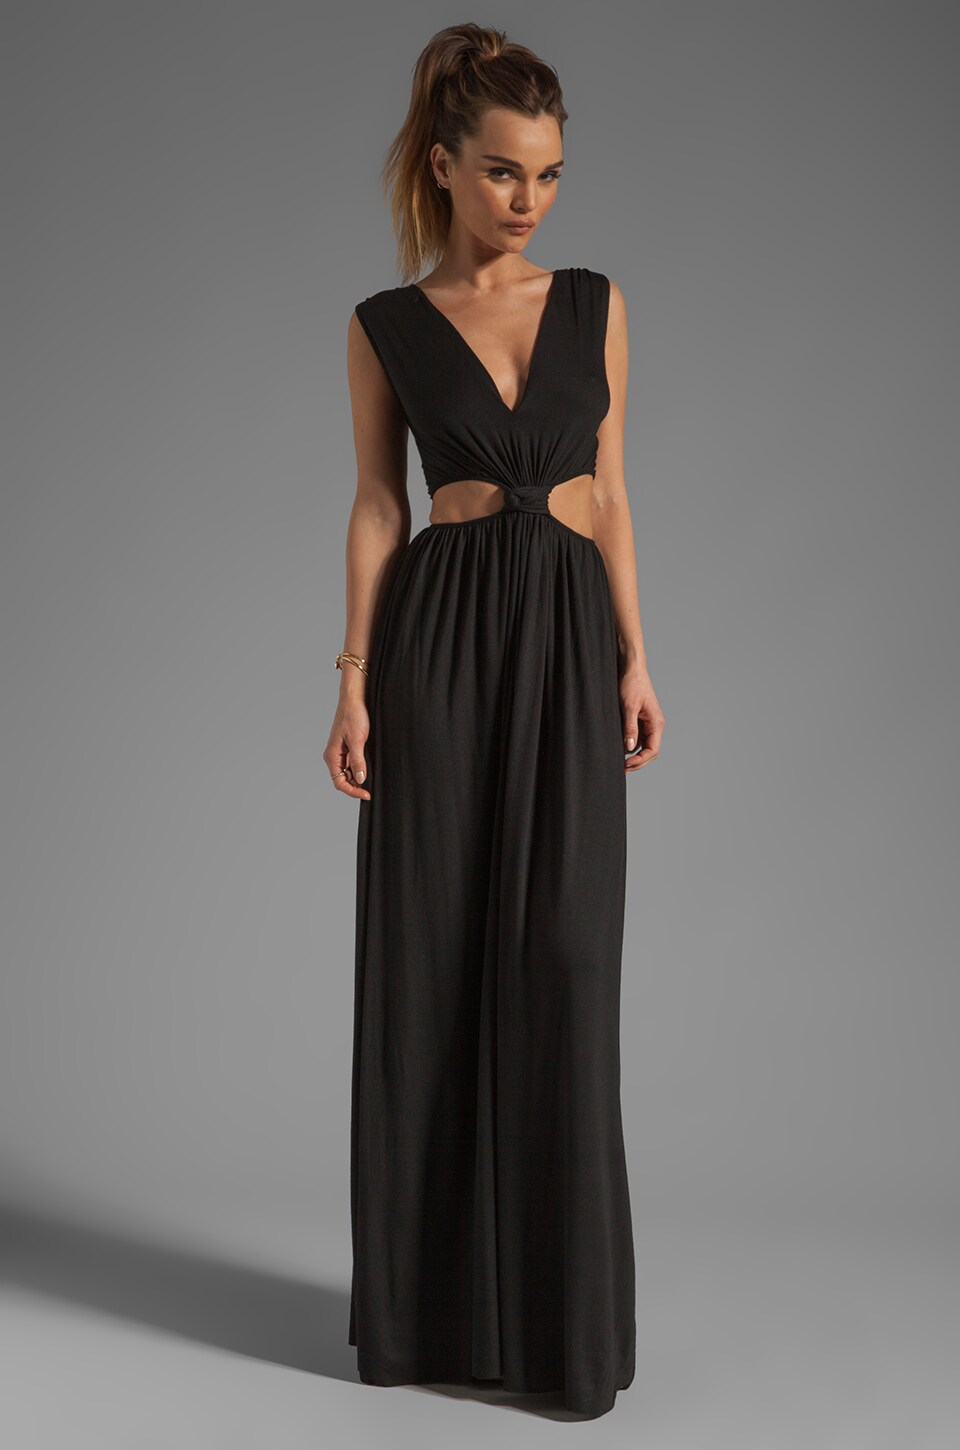 Strapless summer maxi dresses